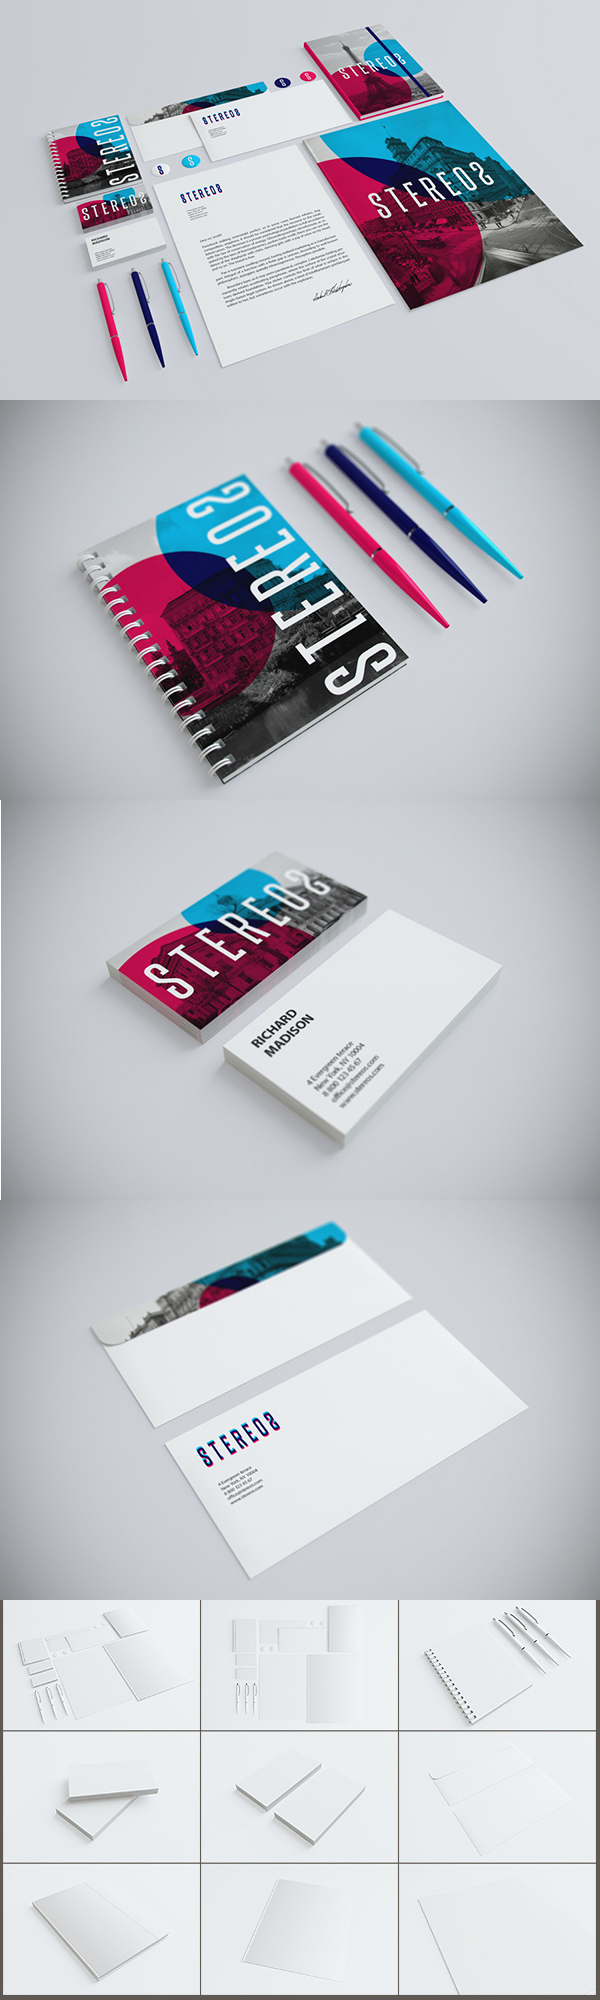 02 Photorealistic Branding : Identity : Stationary Mock-up.